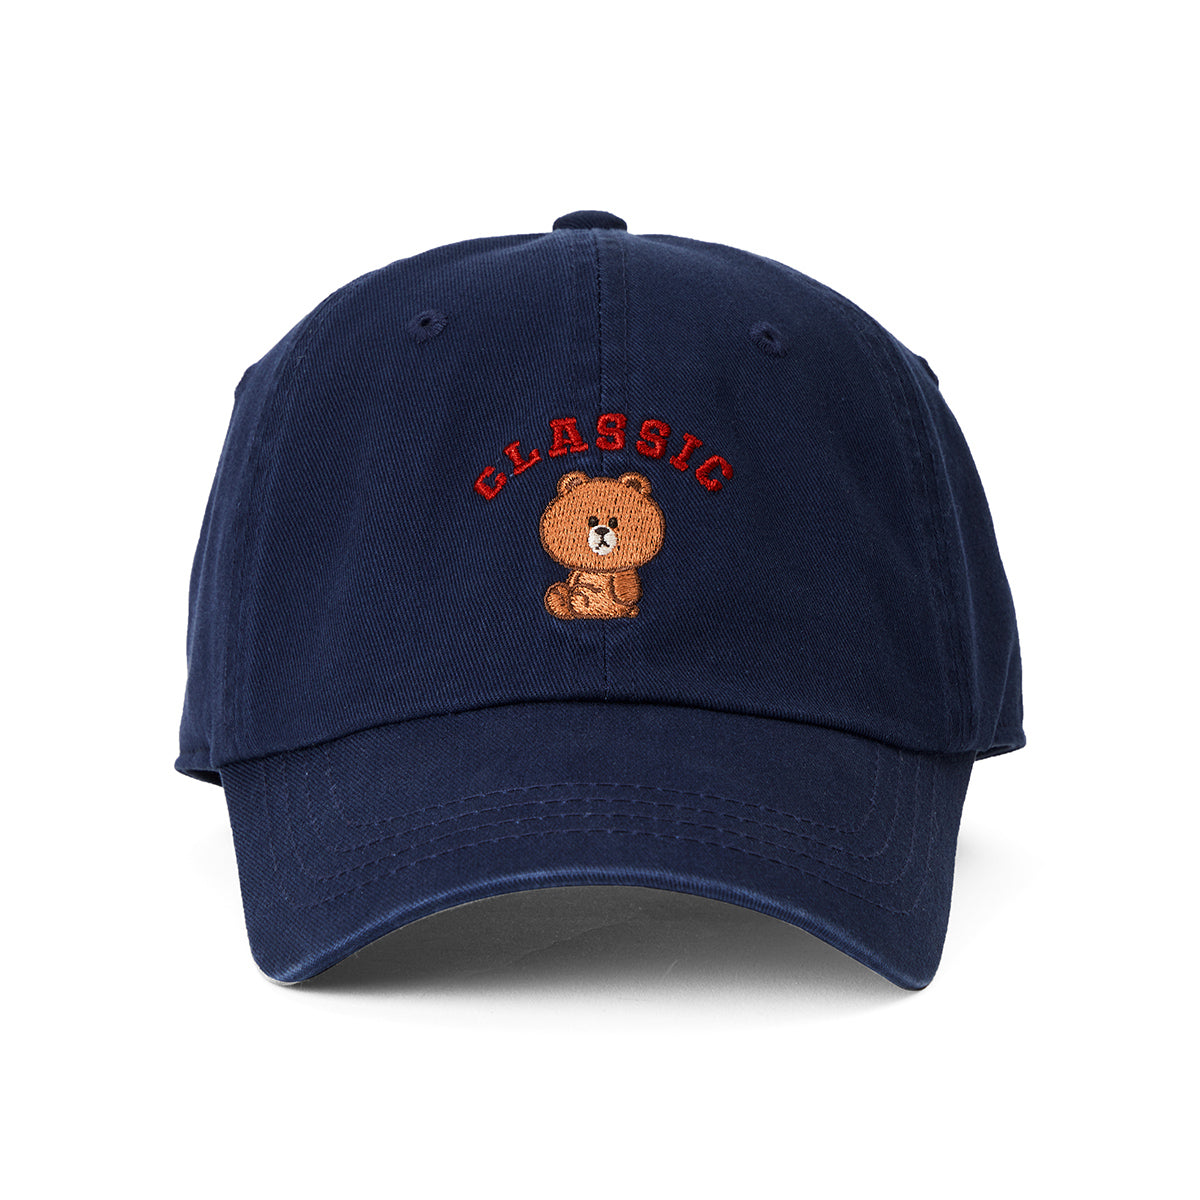 LINE FRIENDS BROWN University Washed Ball Cap Navy